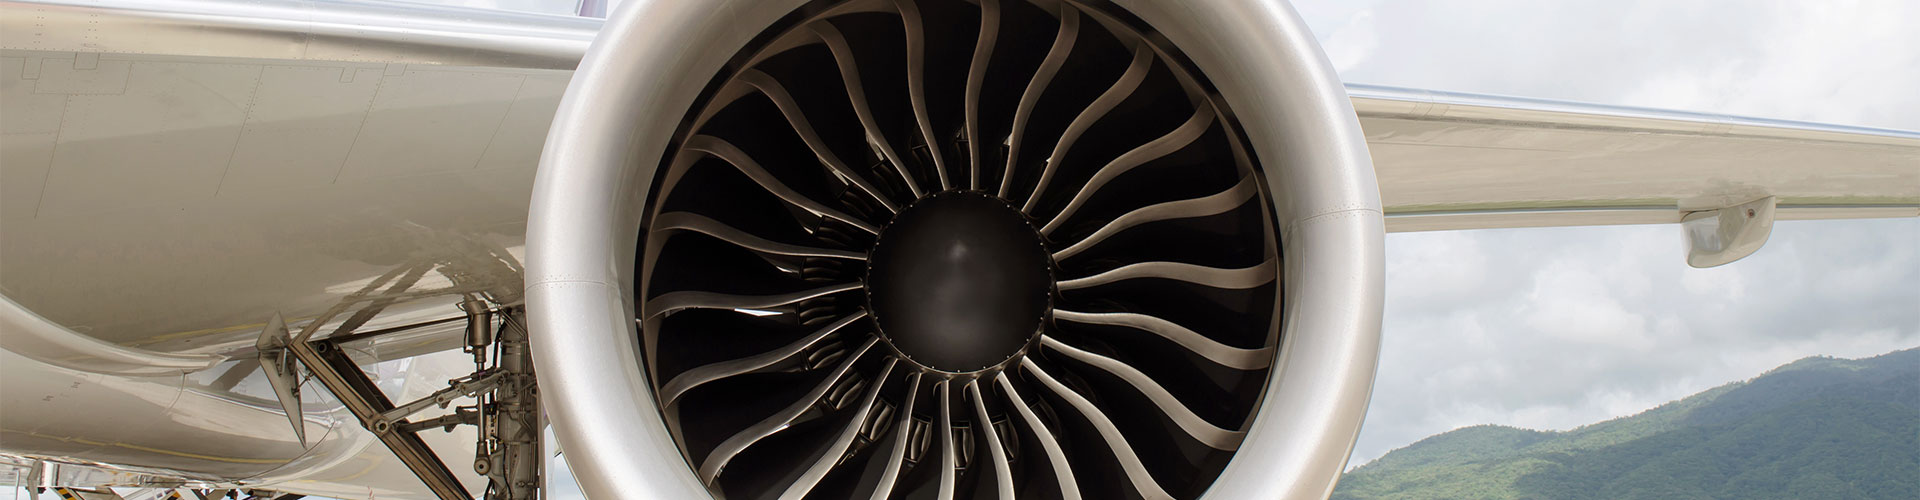 A&D---Aero-Engines